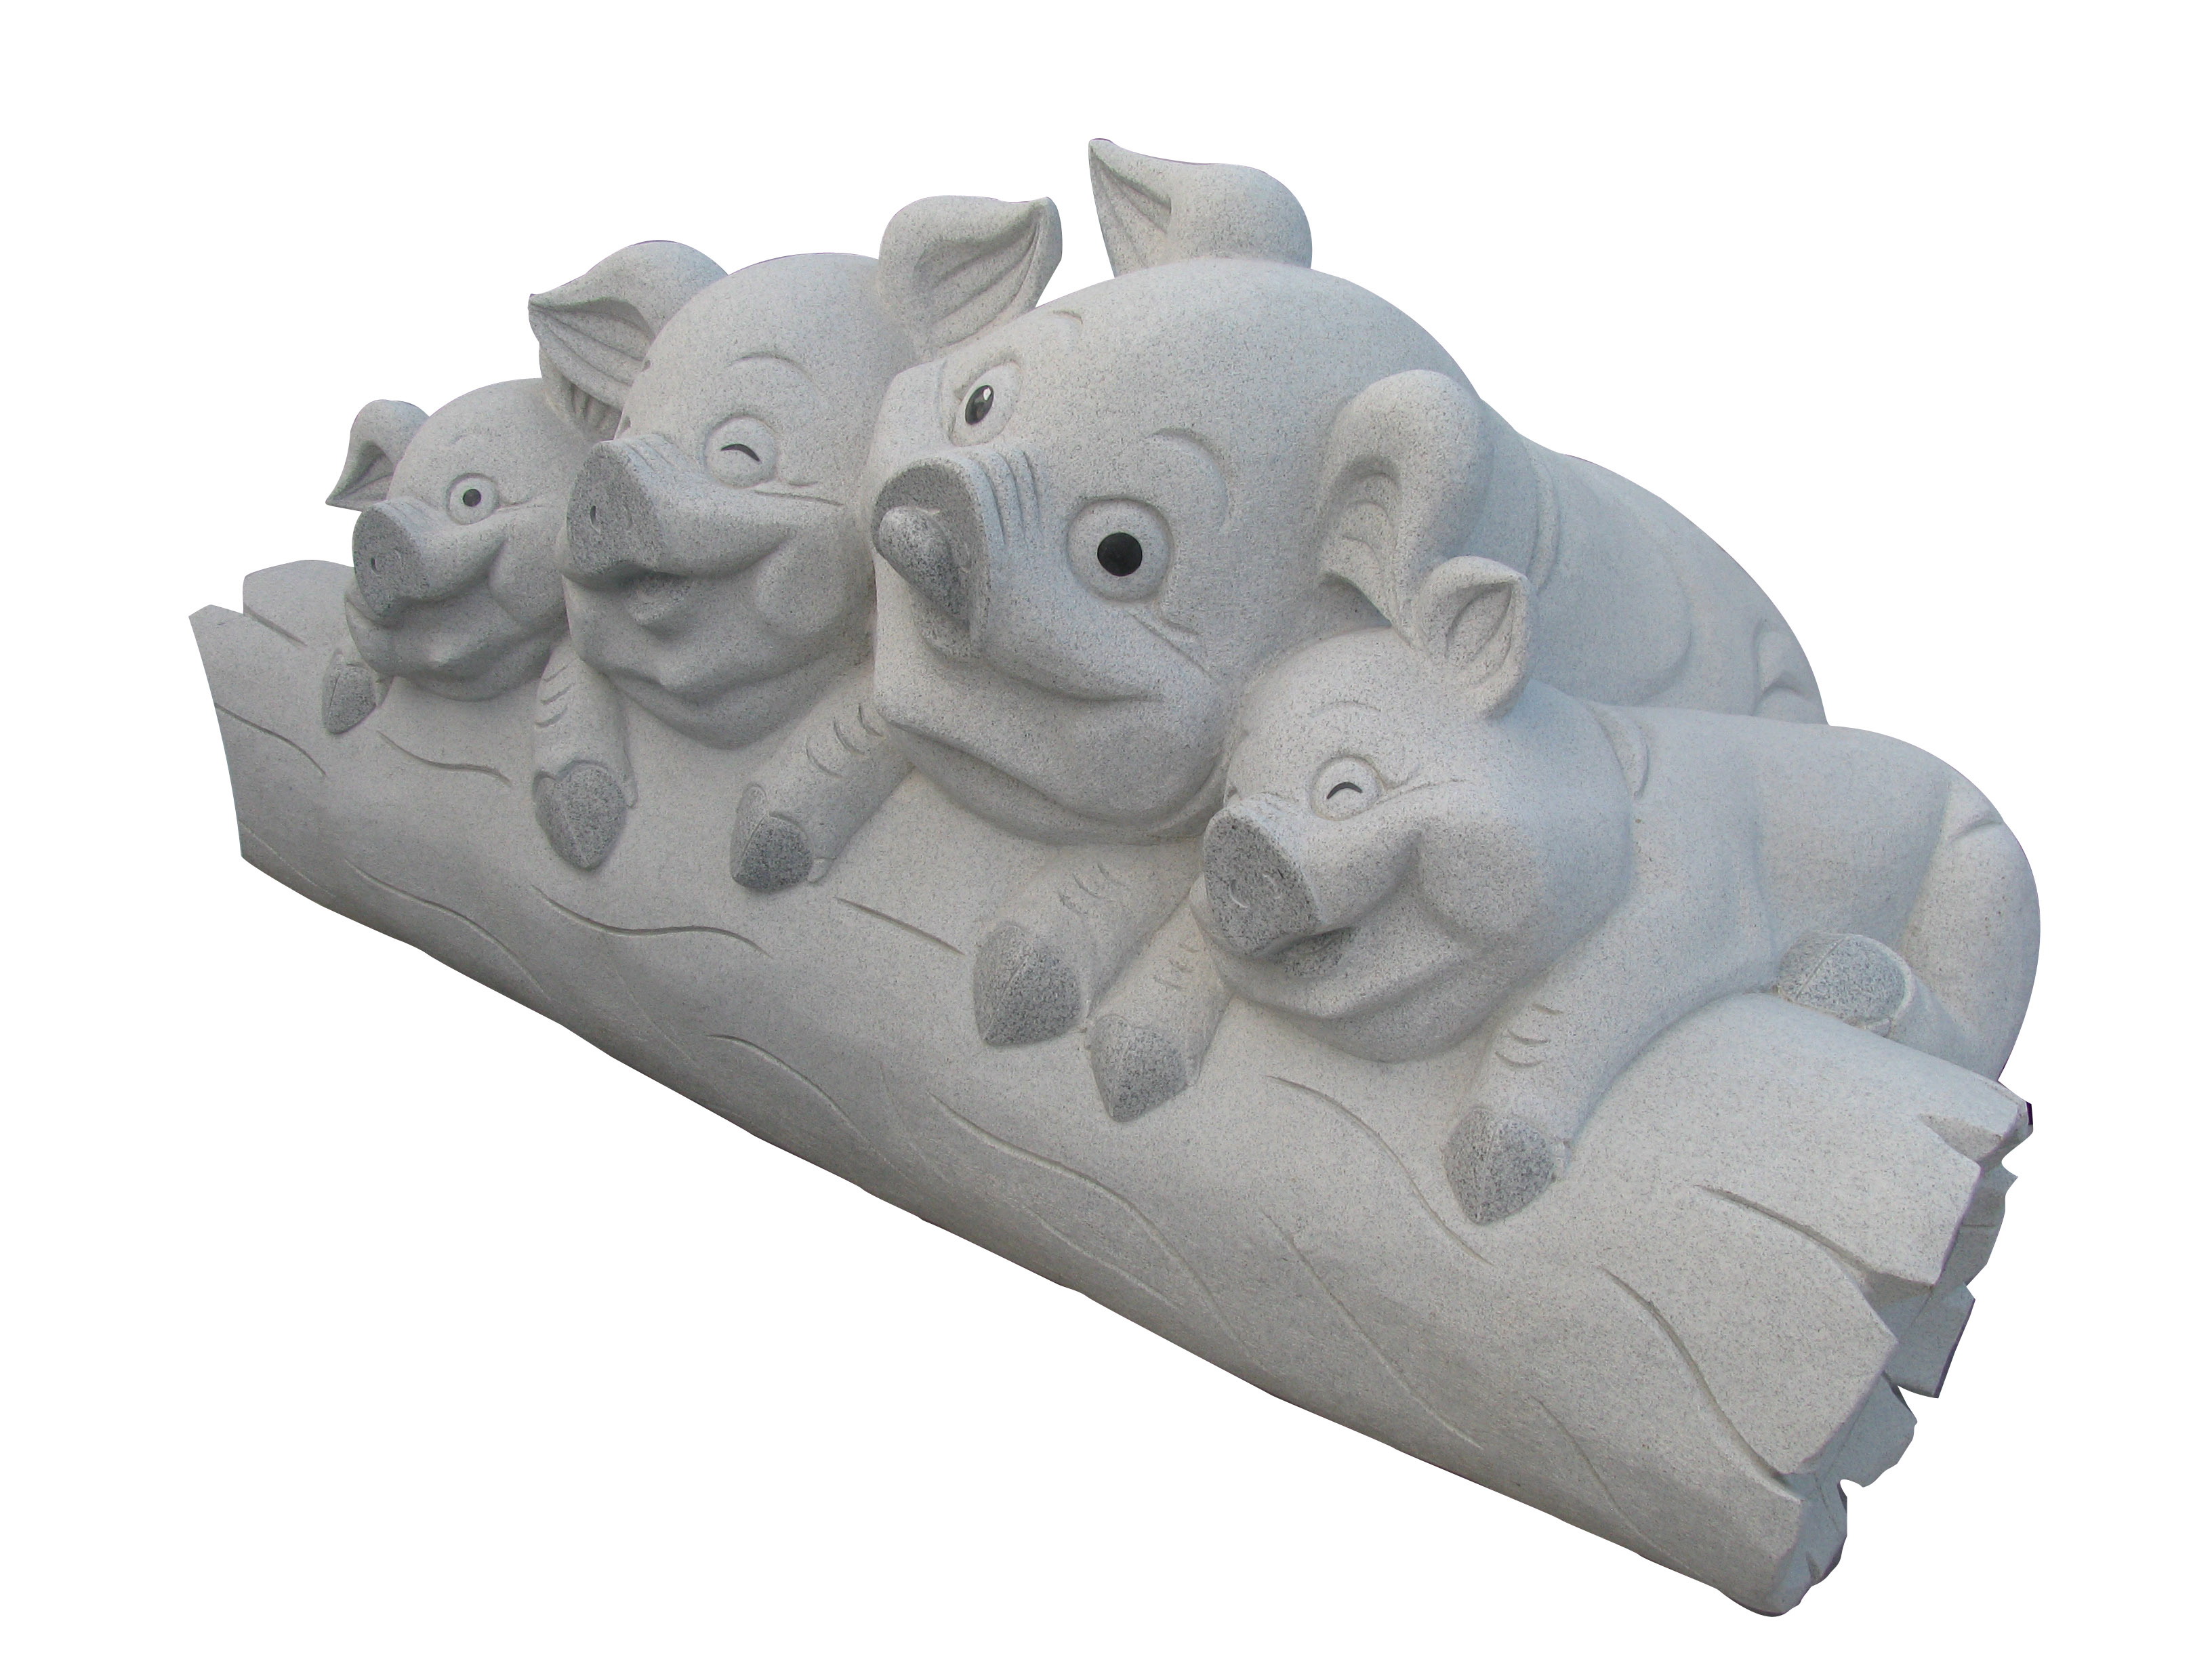 Happy Pigs Sculpture